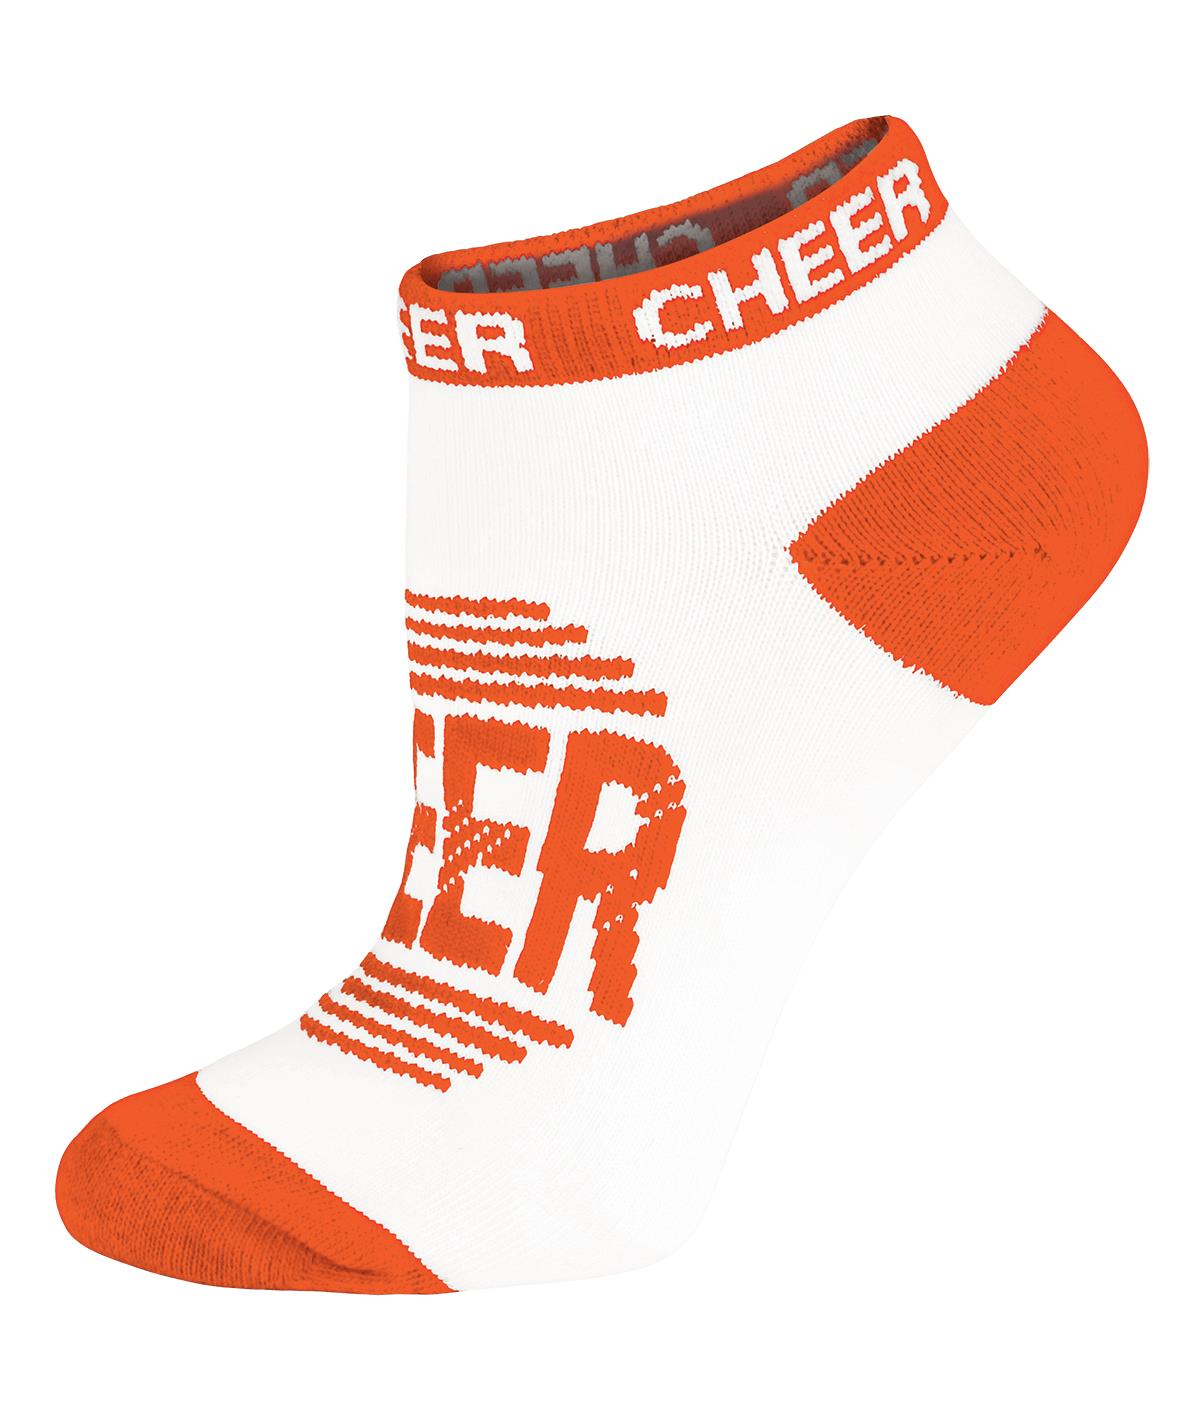 Chasse Cheer Stamp Anklet